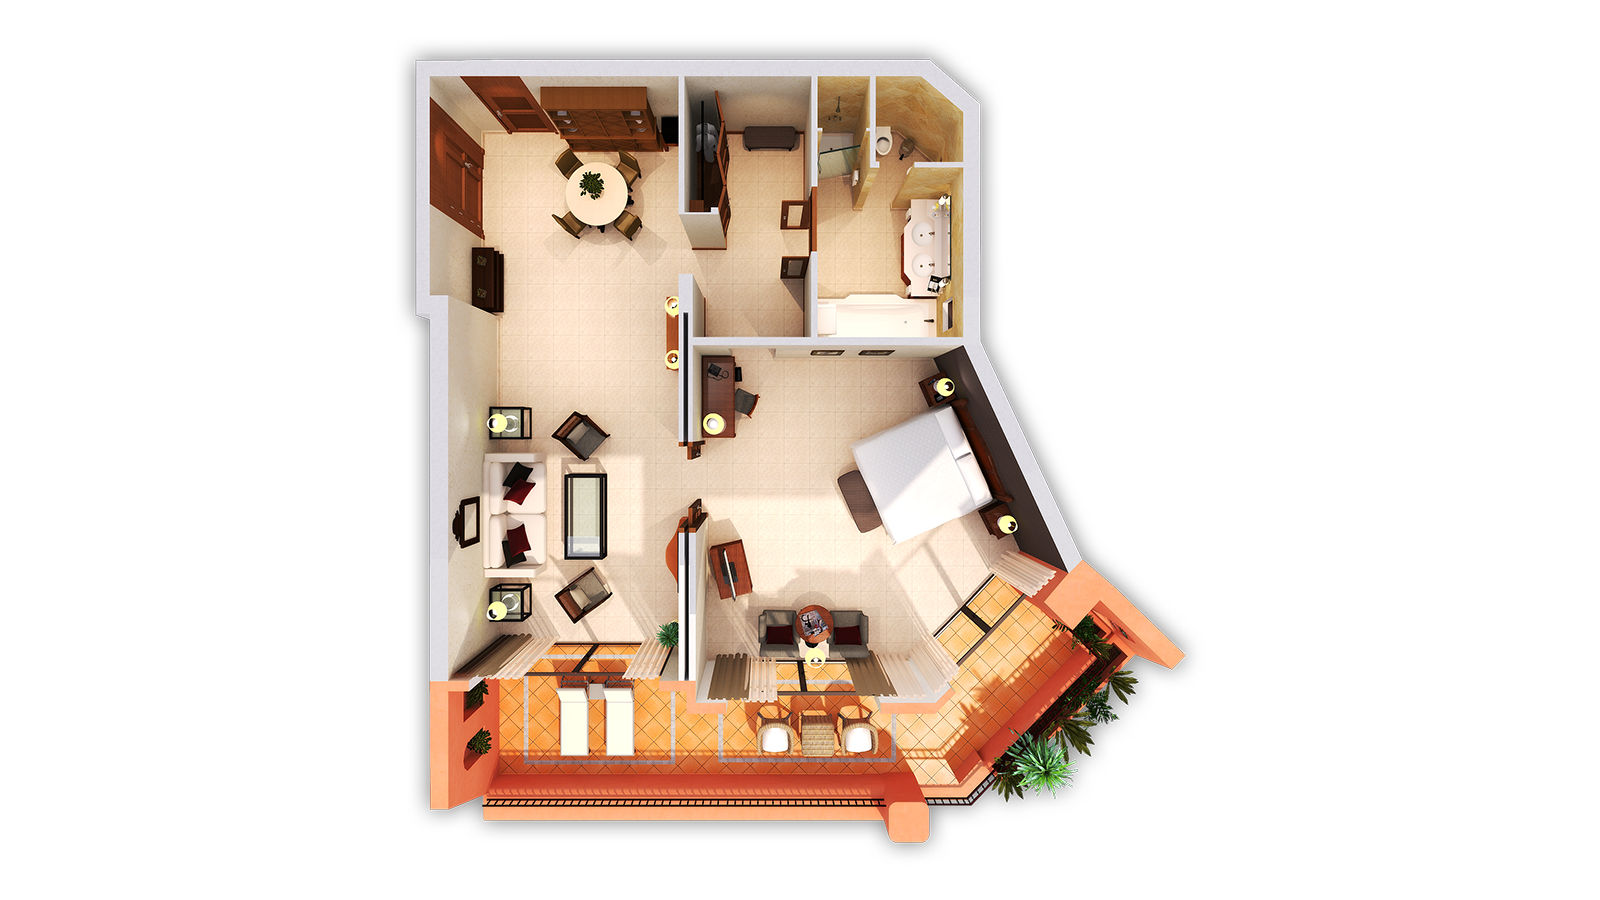 PREMIUM SUITE 3D FLOOR PLAN